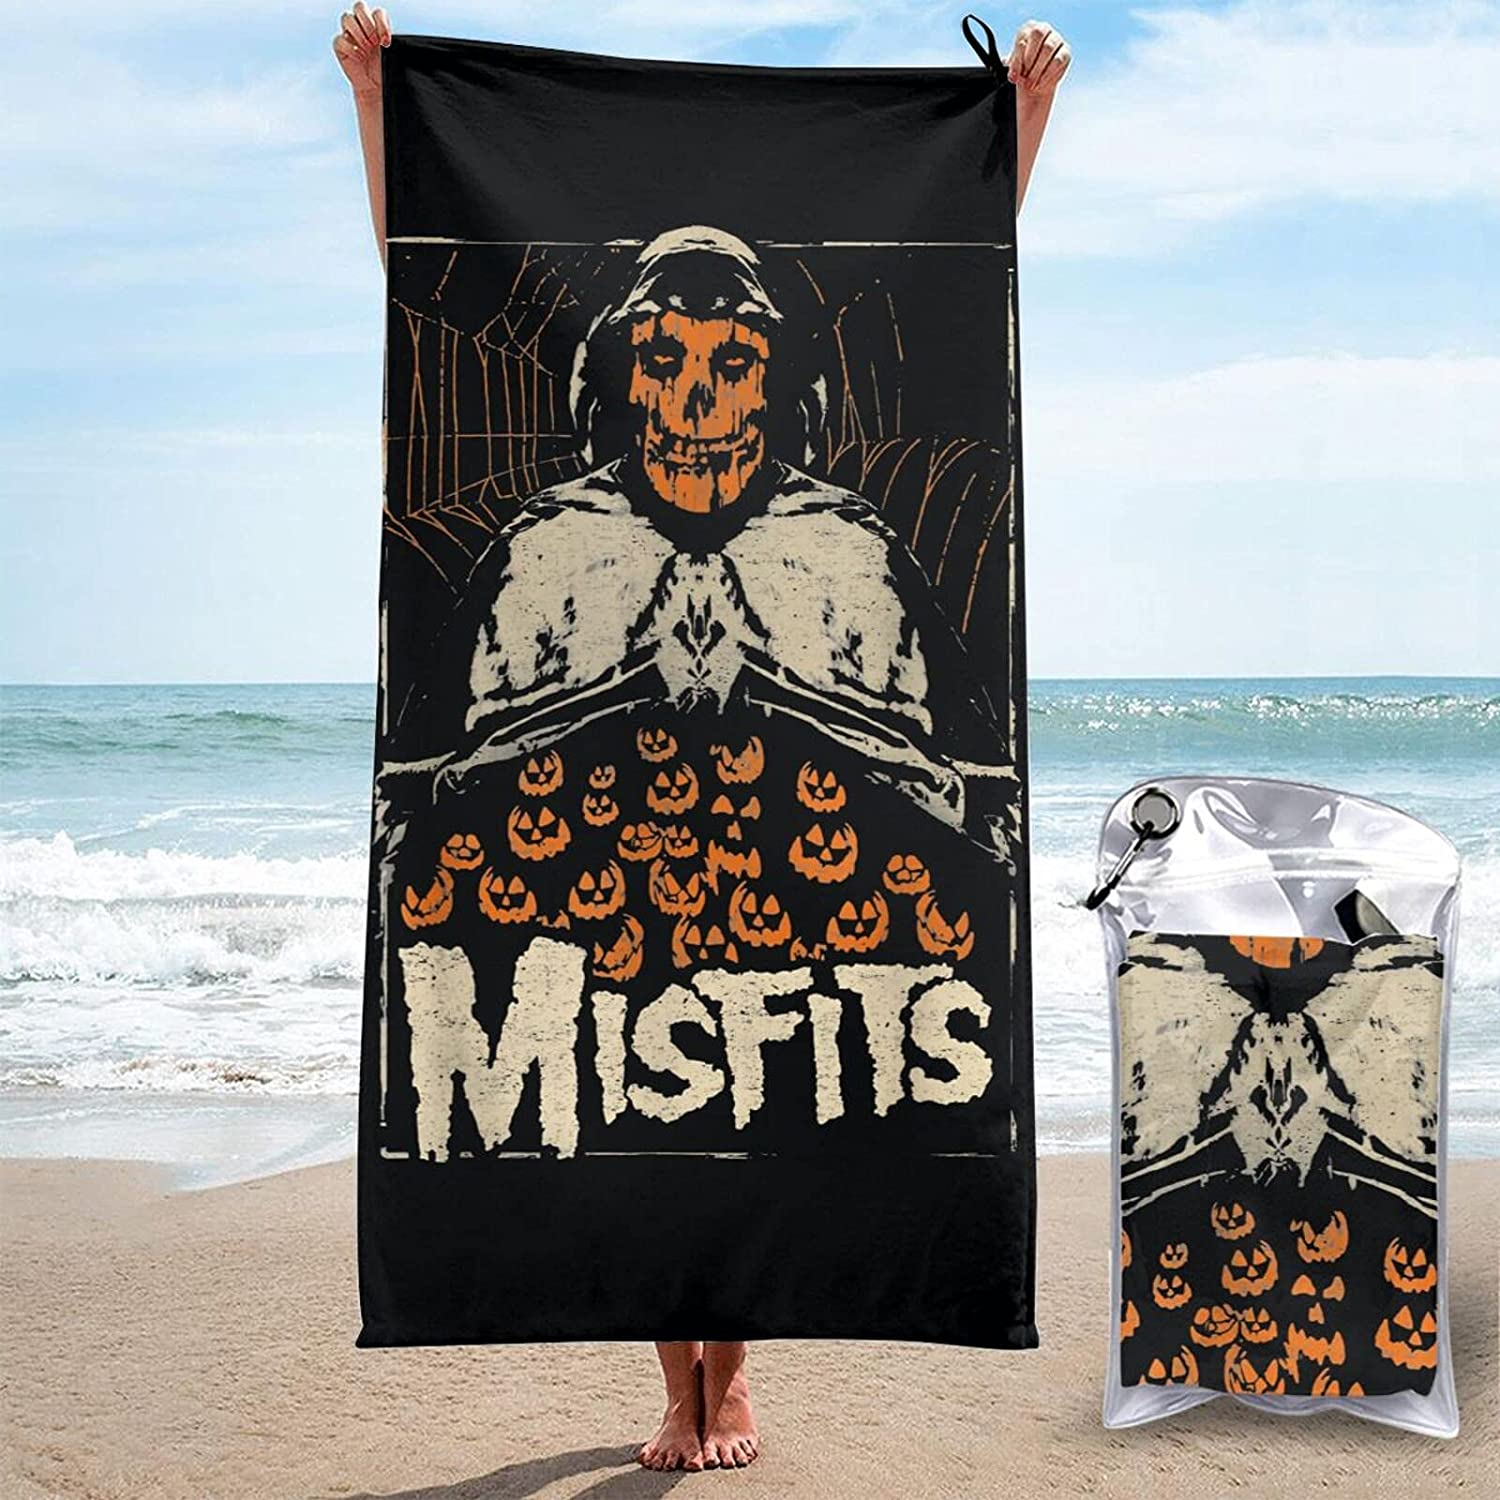 Misfits Elegant 3D Printed Large Beach Towels Max 47% OFF Sand-Free Quick-Dryin are